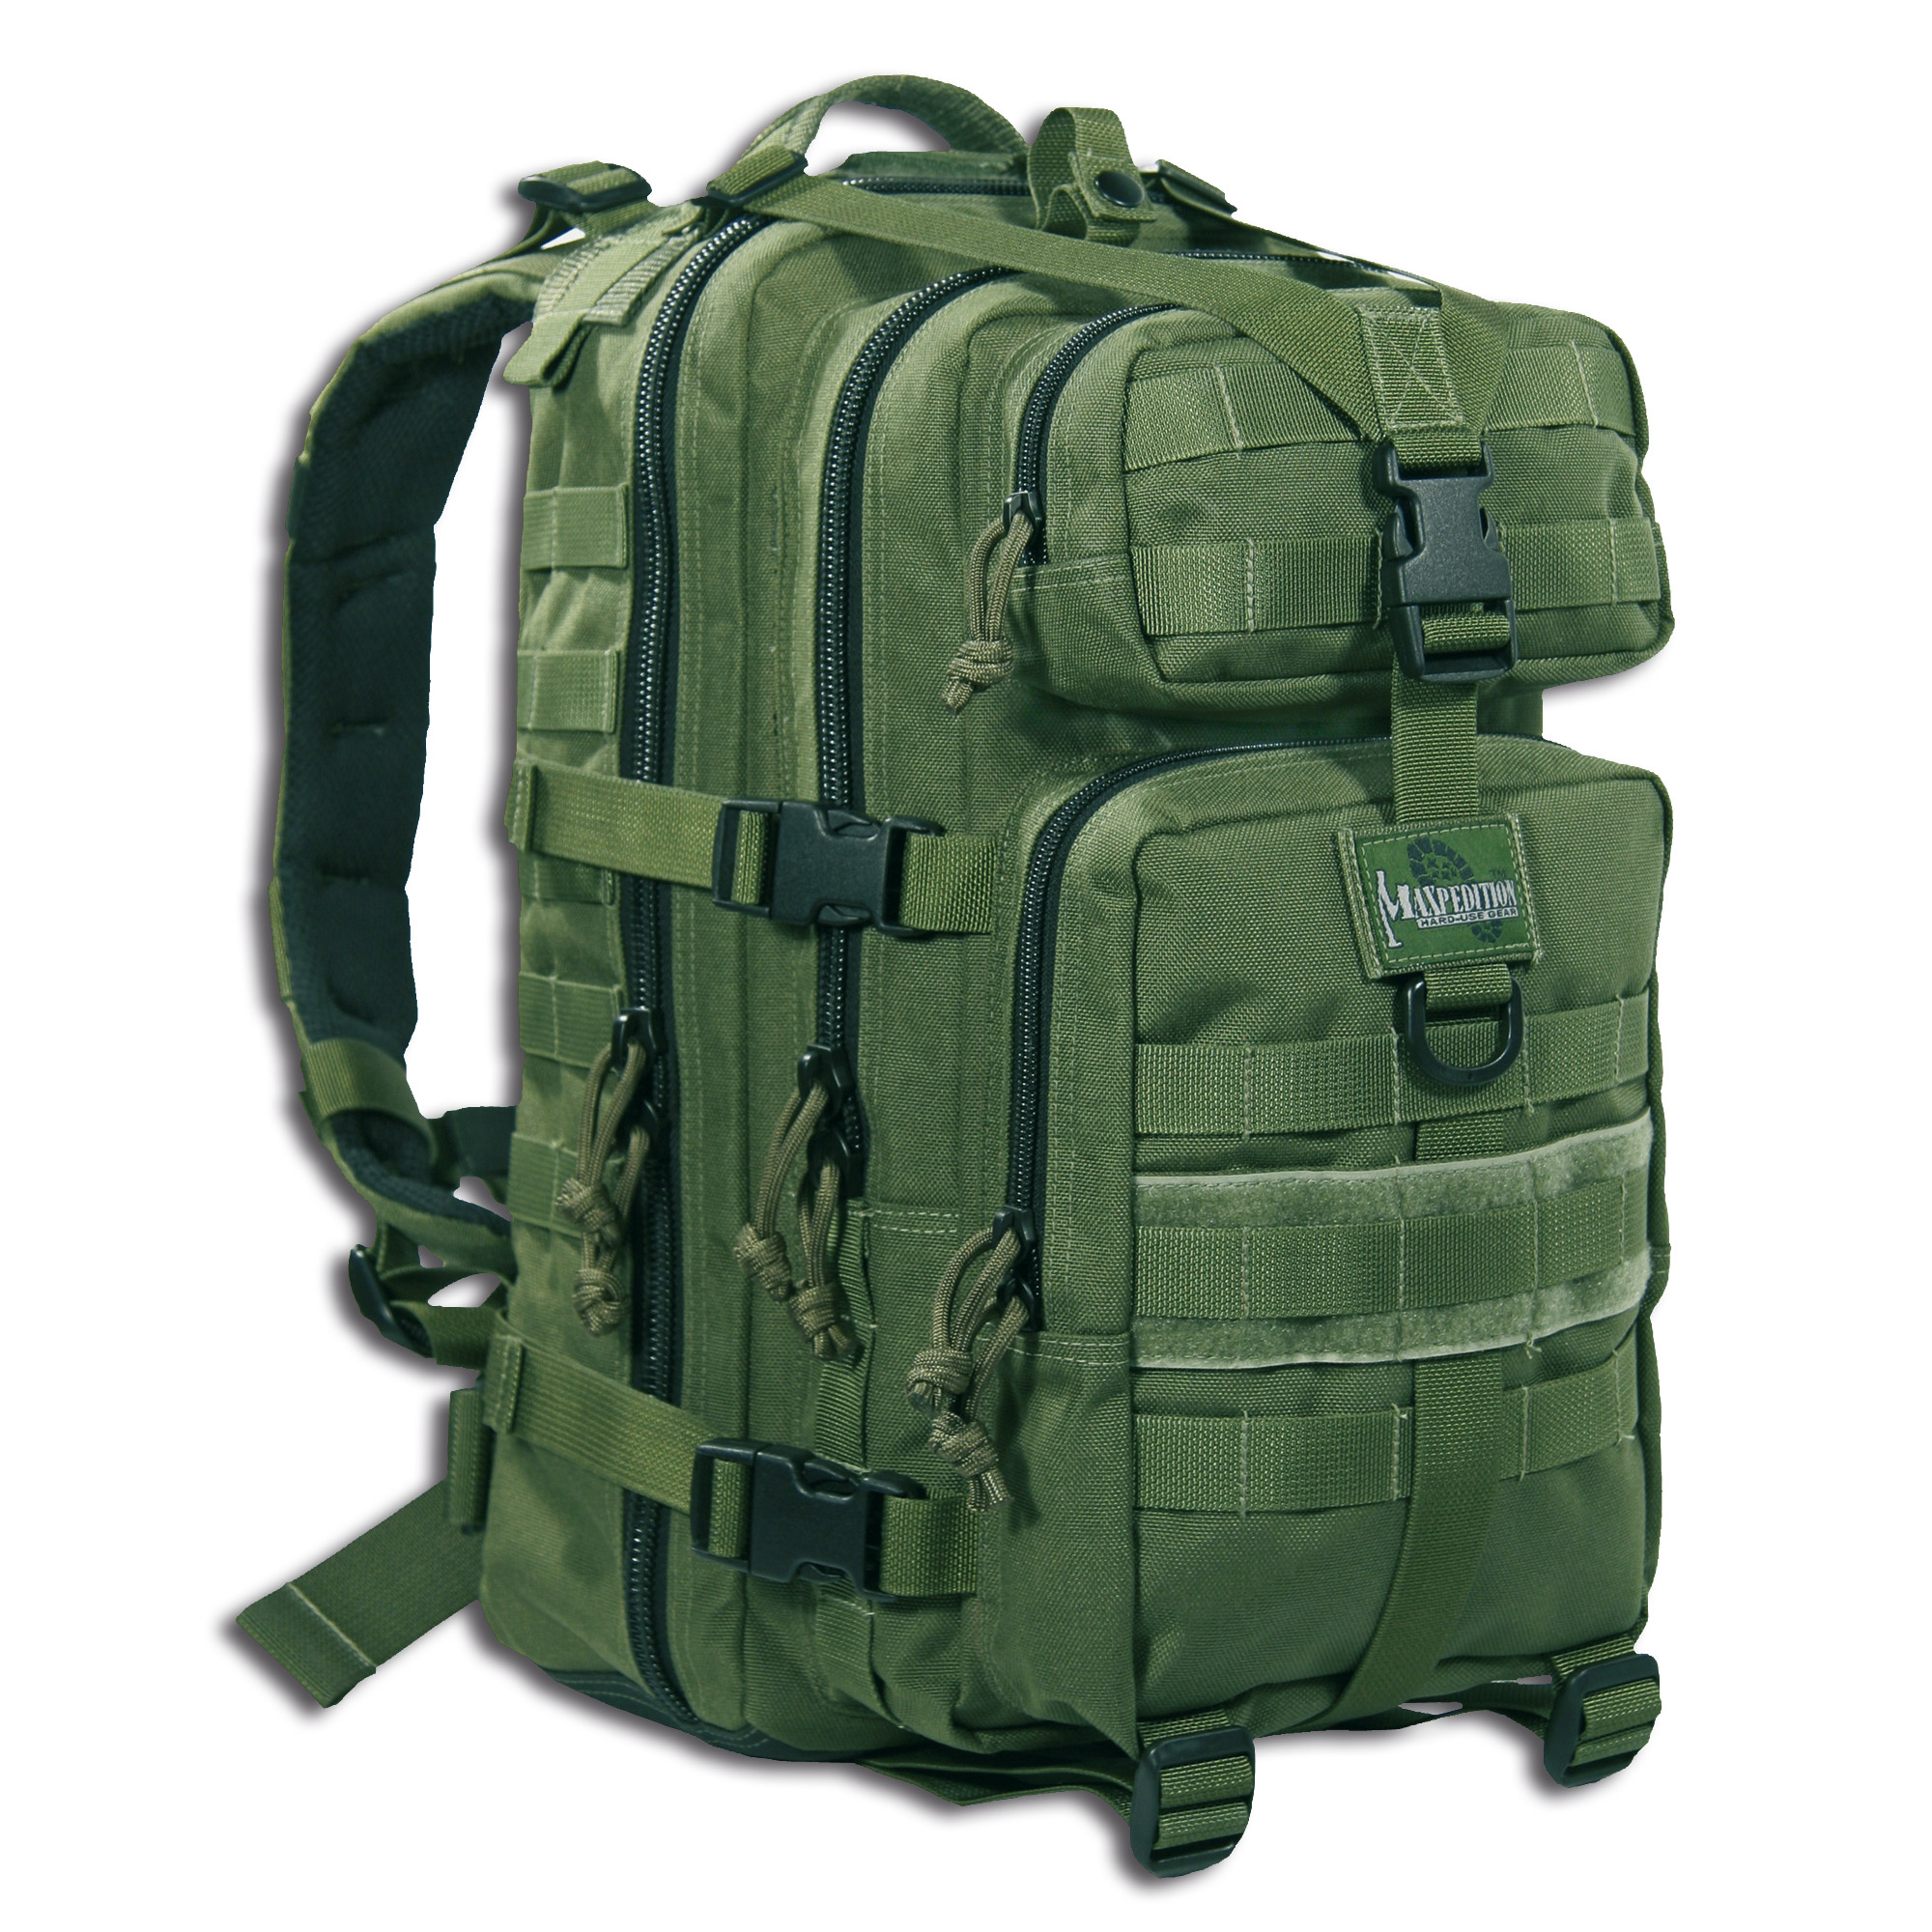 Backpack Maxpedition Falcon II olive